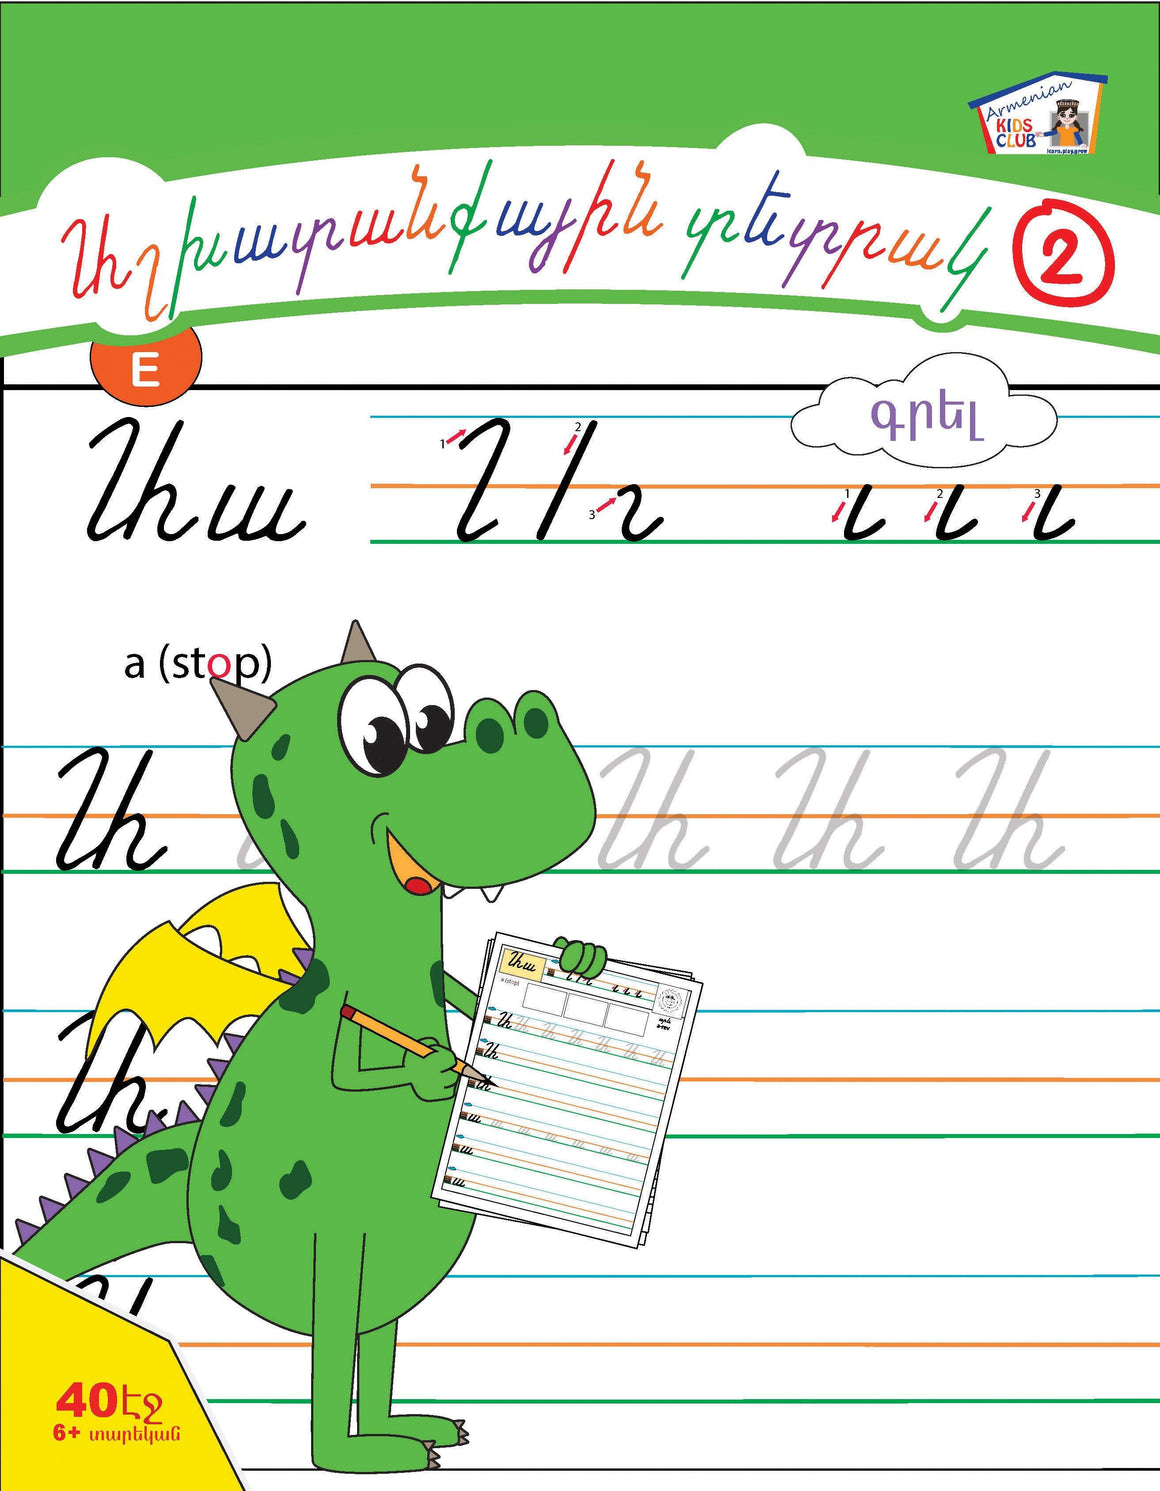 Armenian Alphabet Workbook Level 2 - Armenian Kids Club